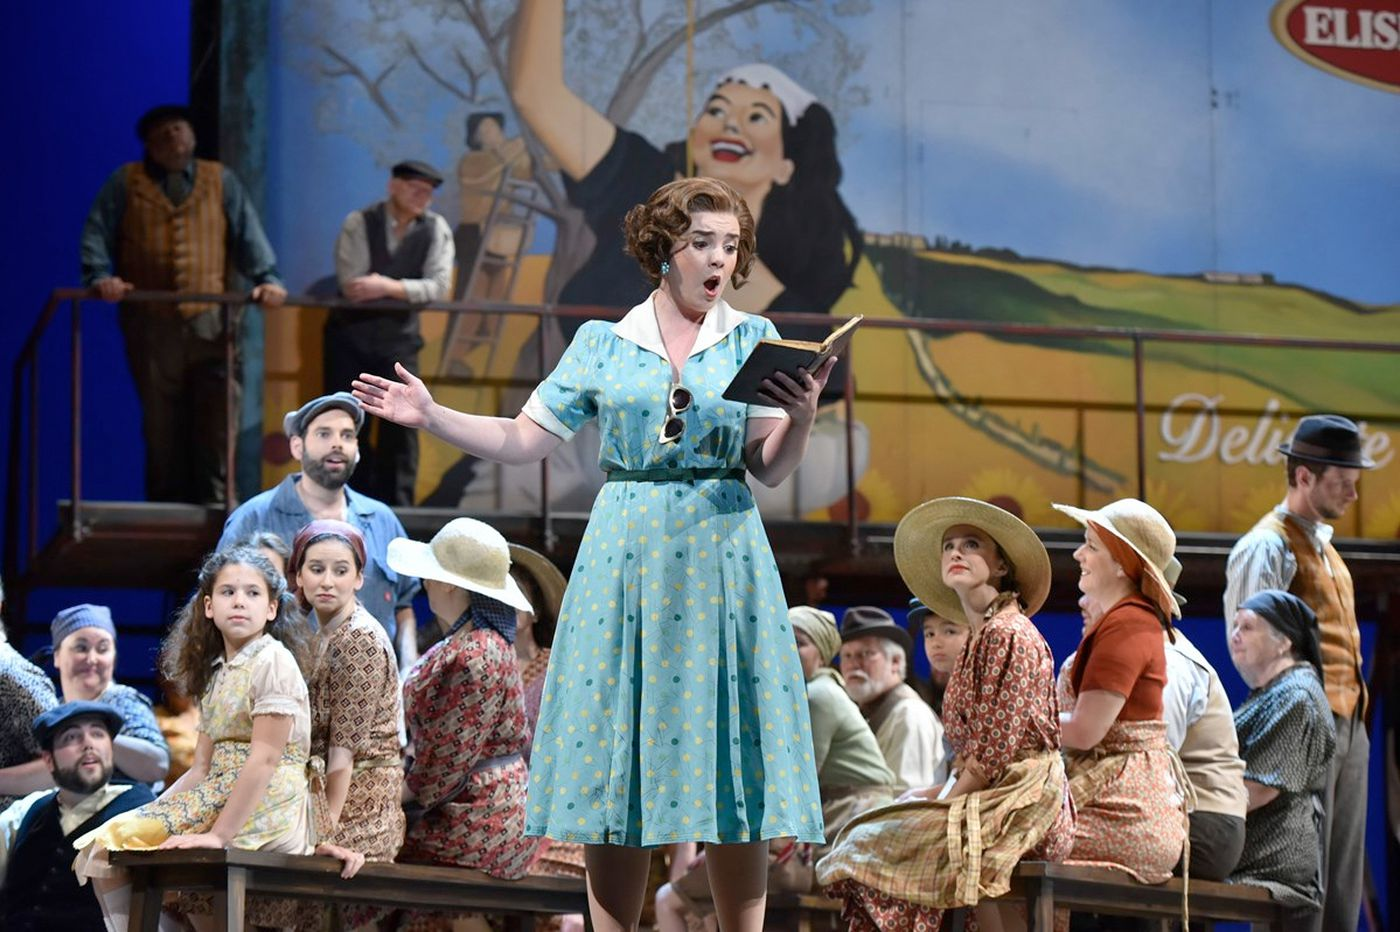 Sarah Shafer's crystalline voice graces Opera Philadelphia